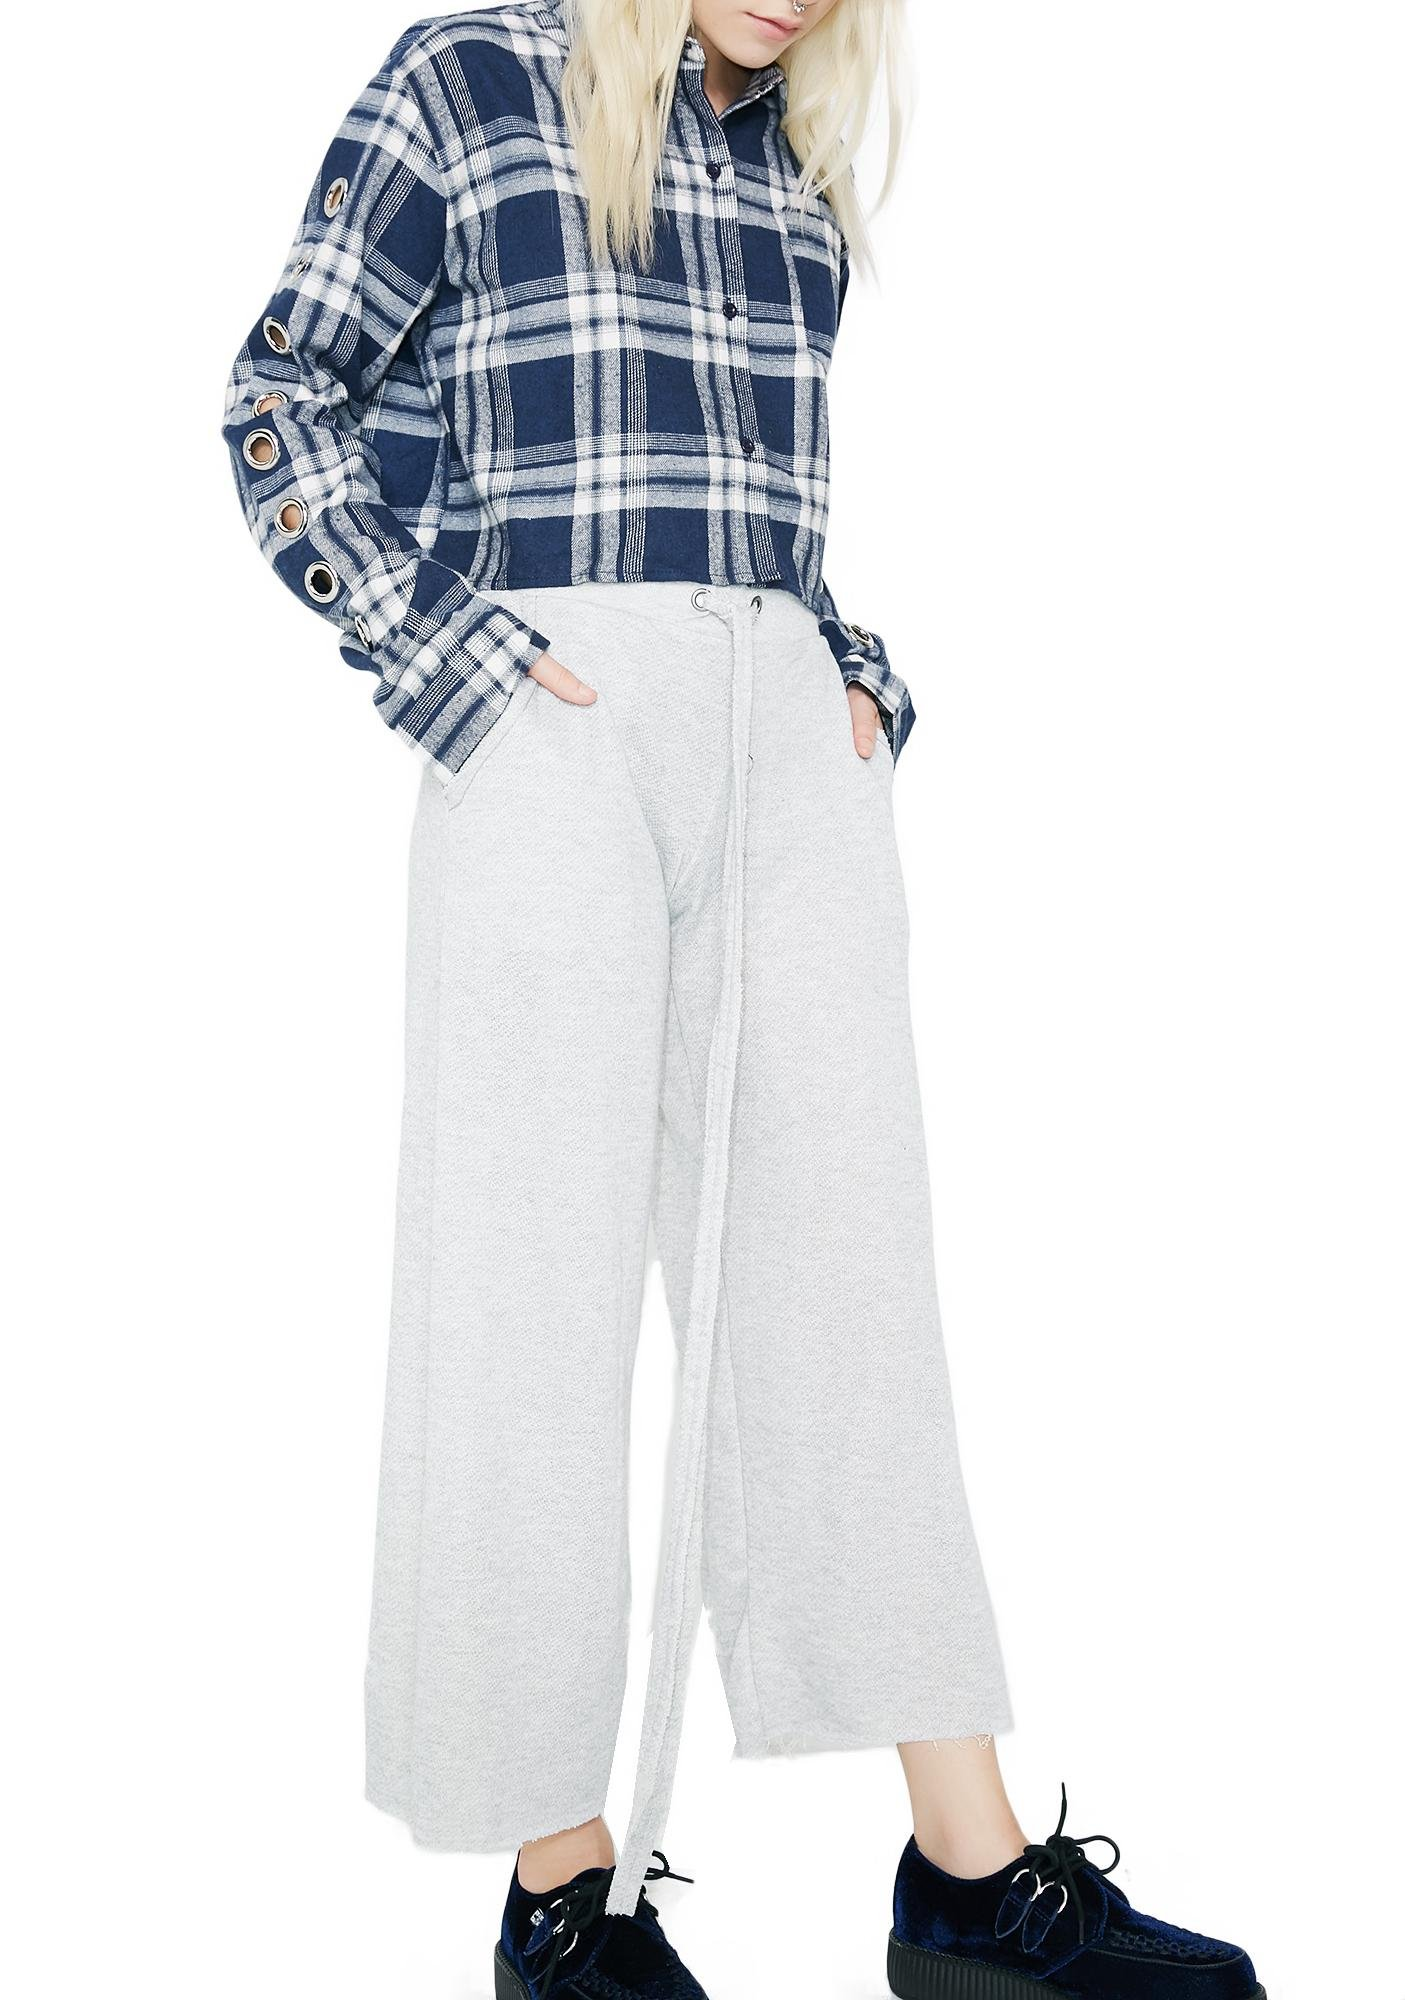 Keep It Fresh Cropped Sweatpants